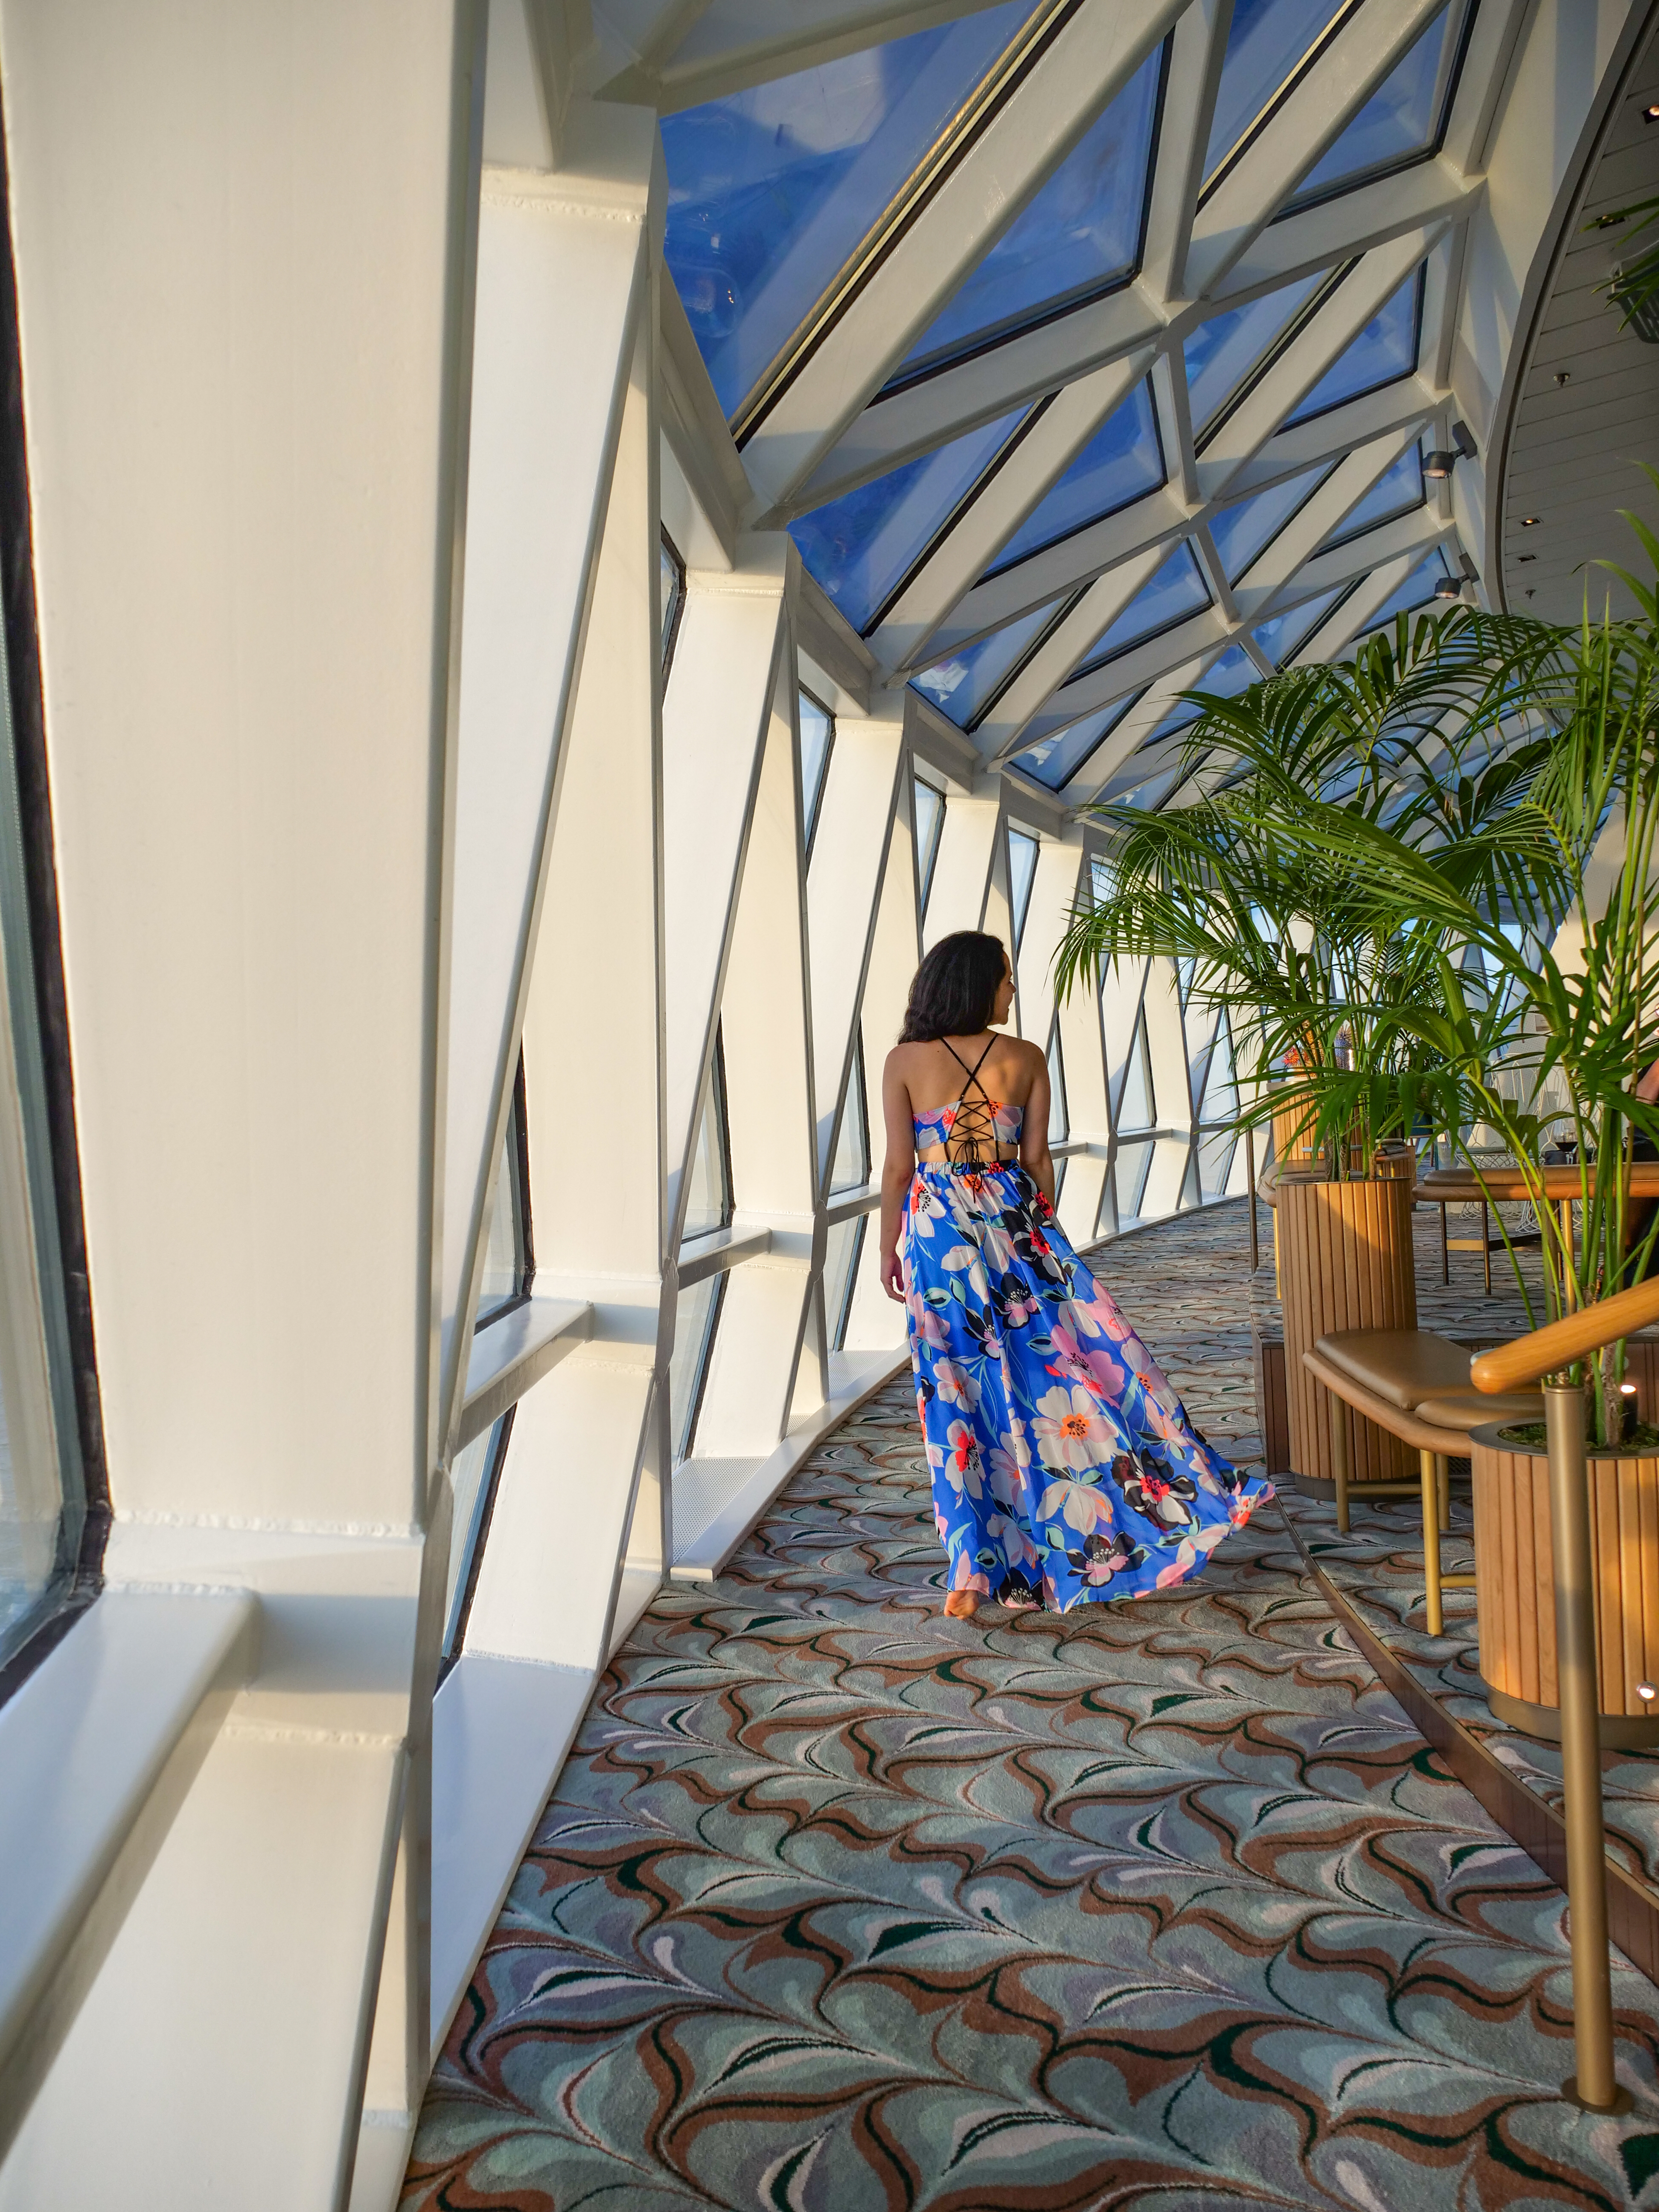 Eden Arch walkway Instagram Guide to the Celebrity Edge Cruise ship